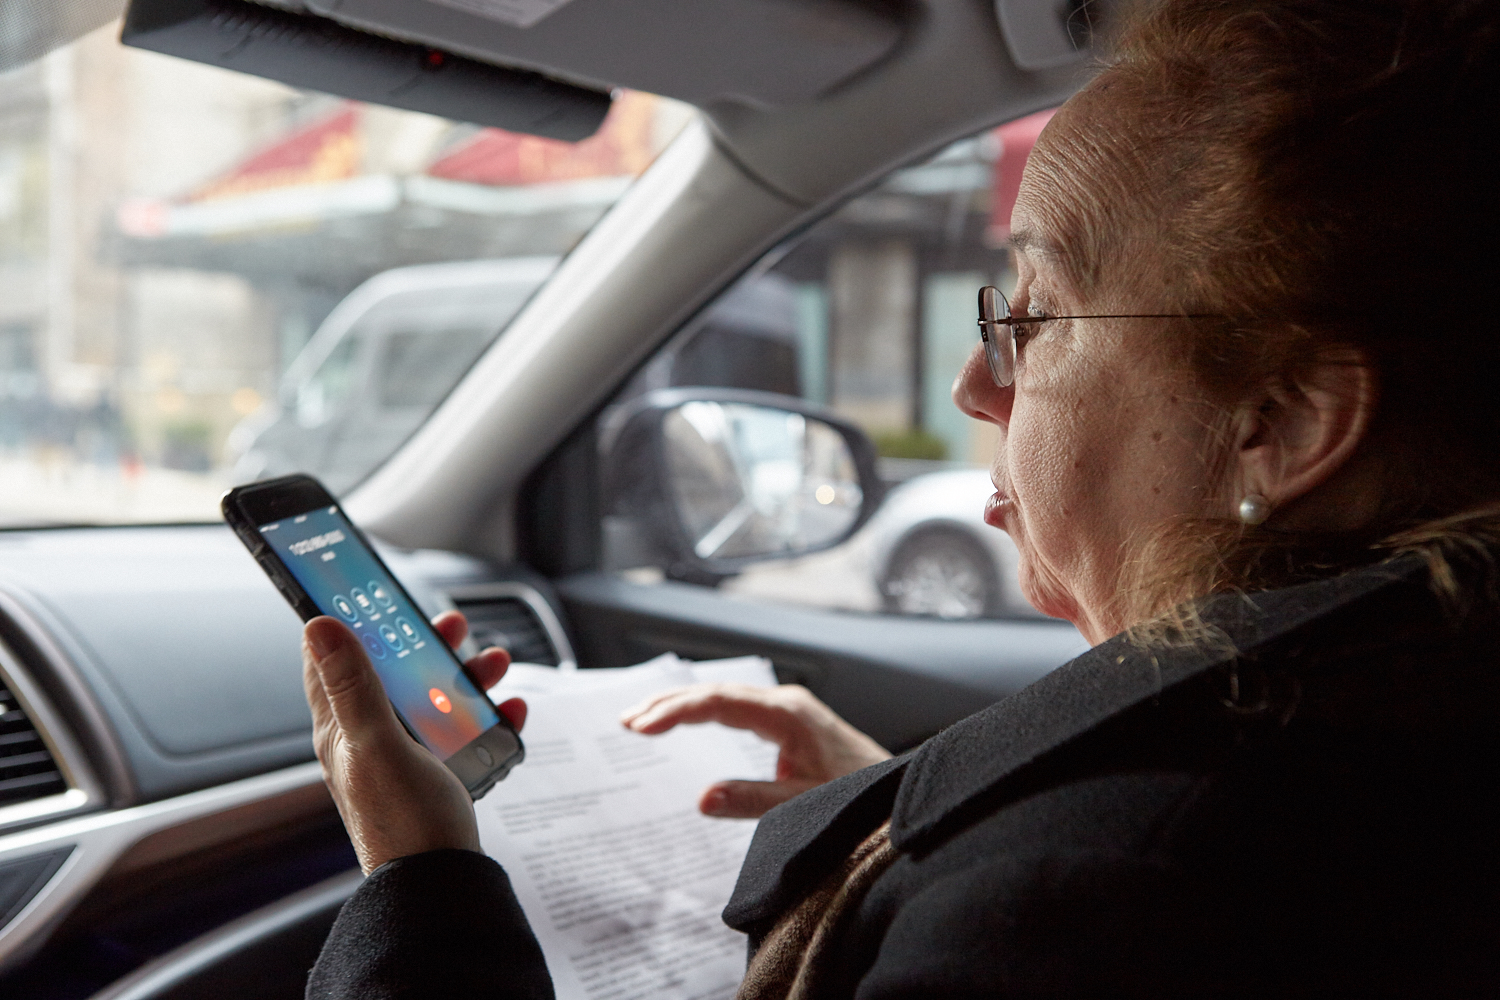 Gale Brewer in her car, on the way to Ruth Messinger's office at the American Jewish World Service in midtown.